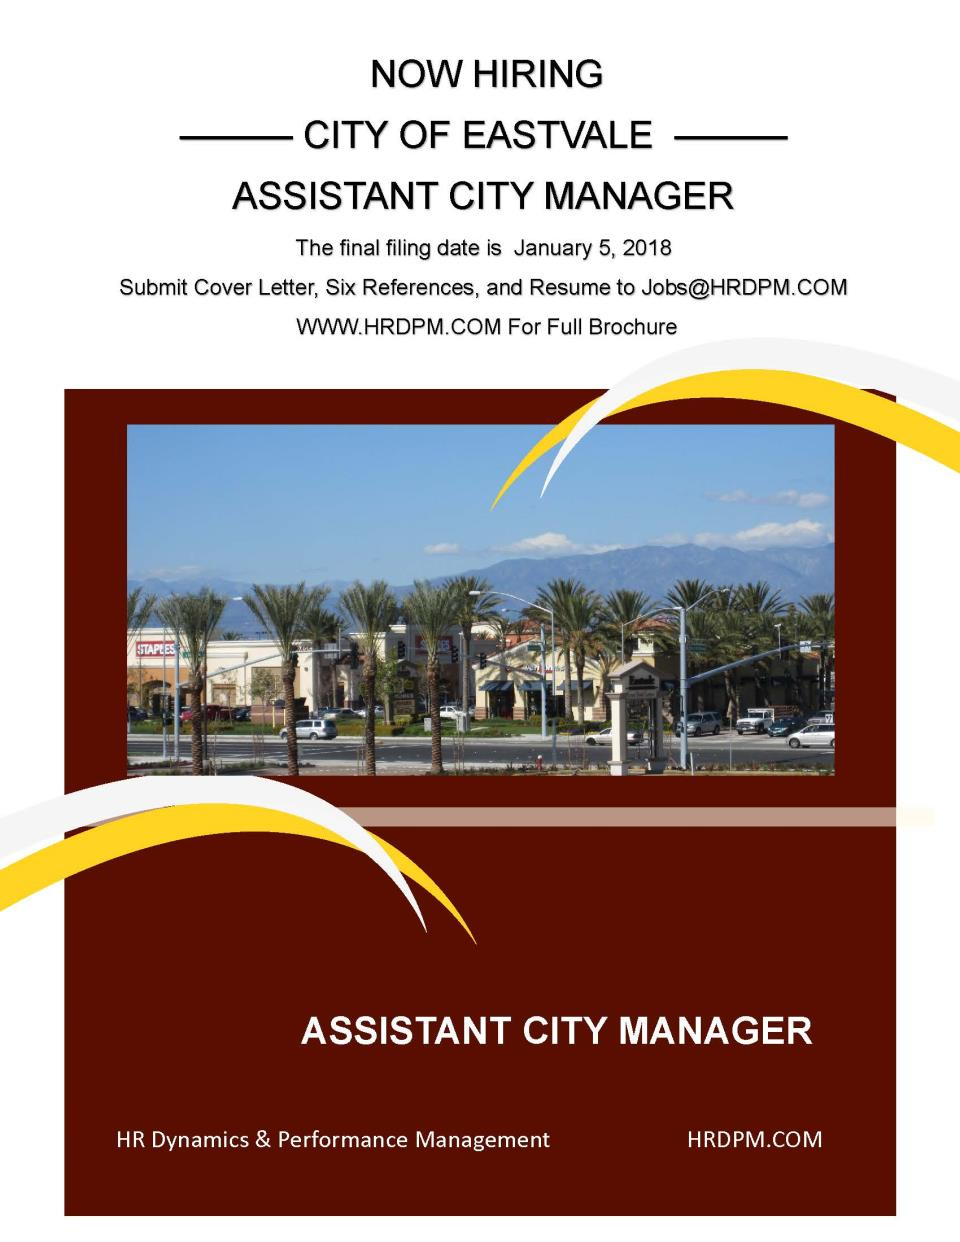 Assistant City Manager Recruitment | News | City of Eastvale, CA